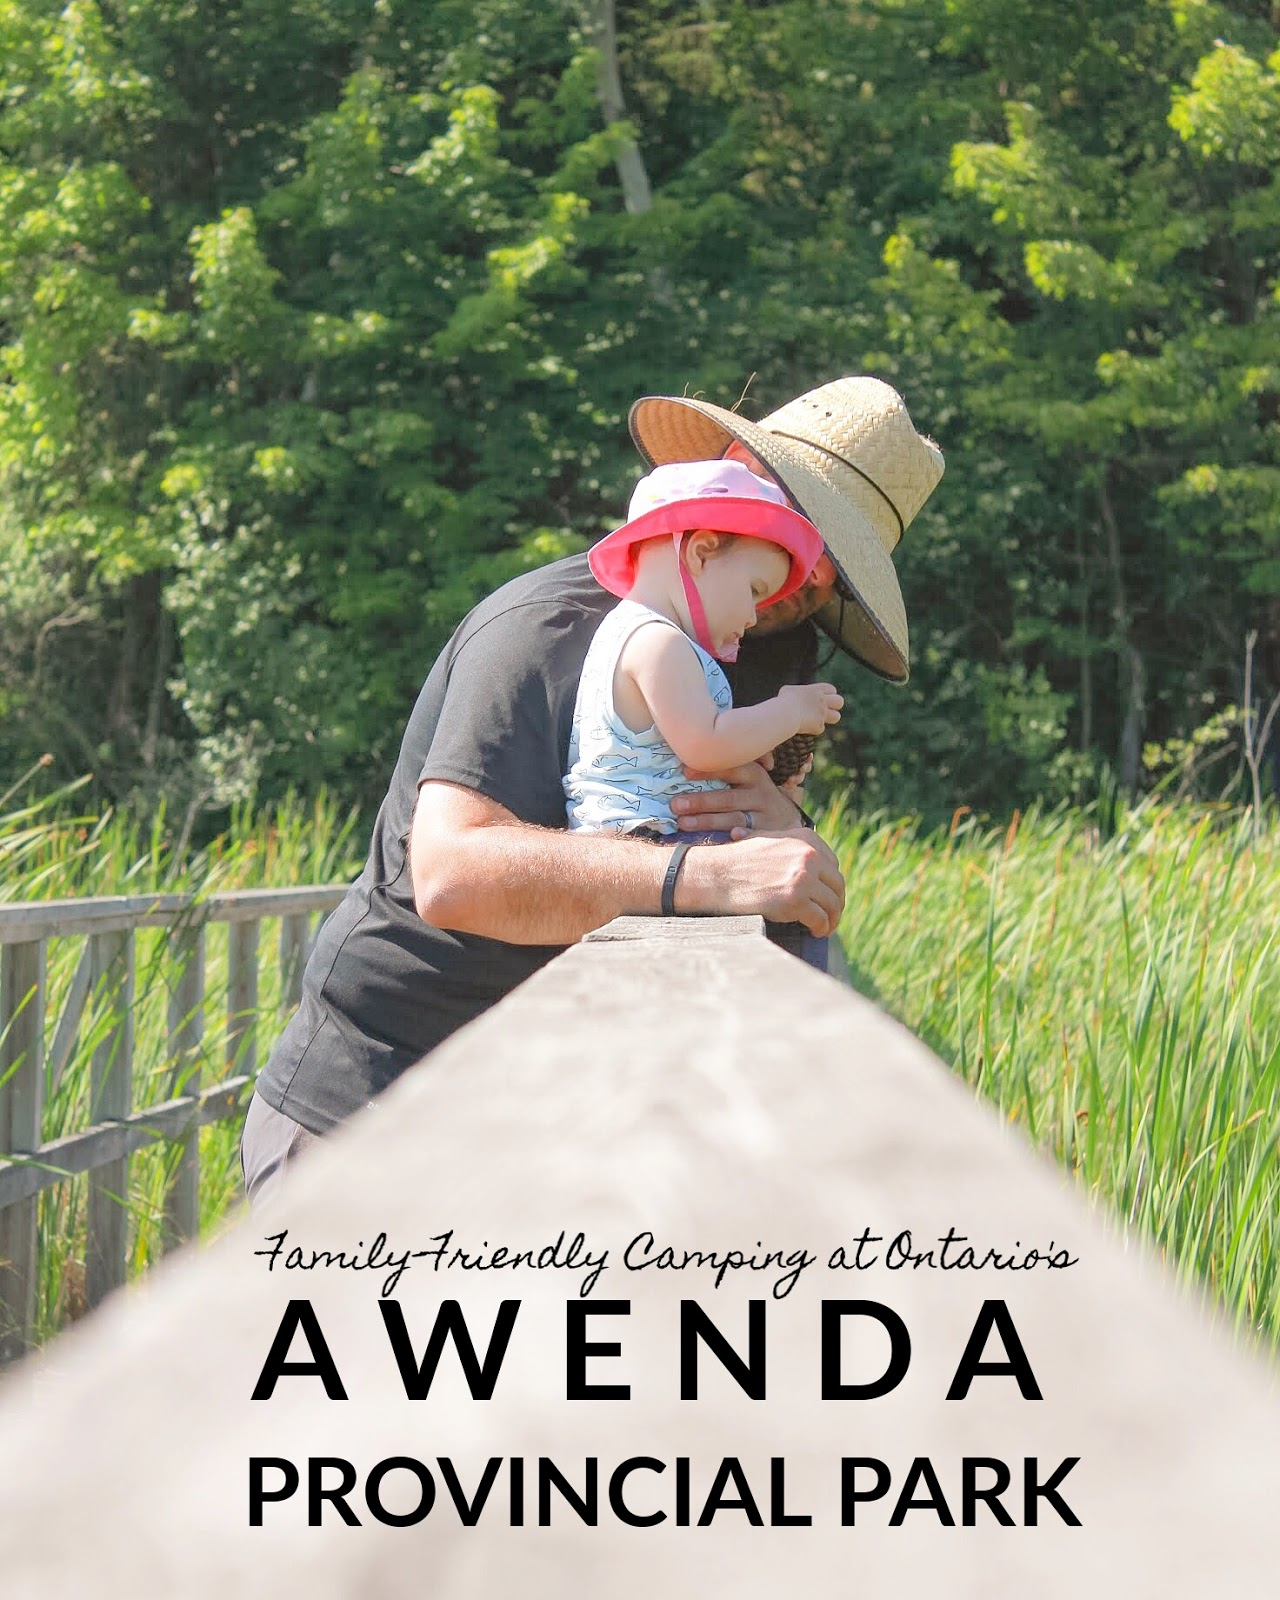 Family Friendly Camping at Ontario's Awenda Provincial Park